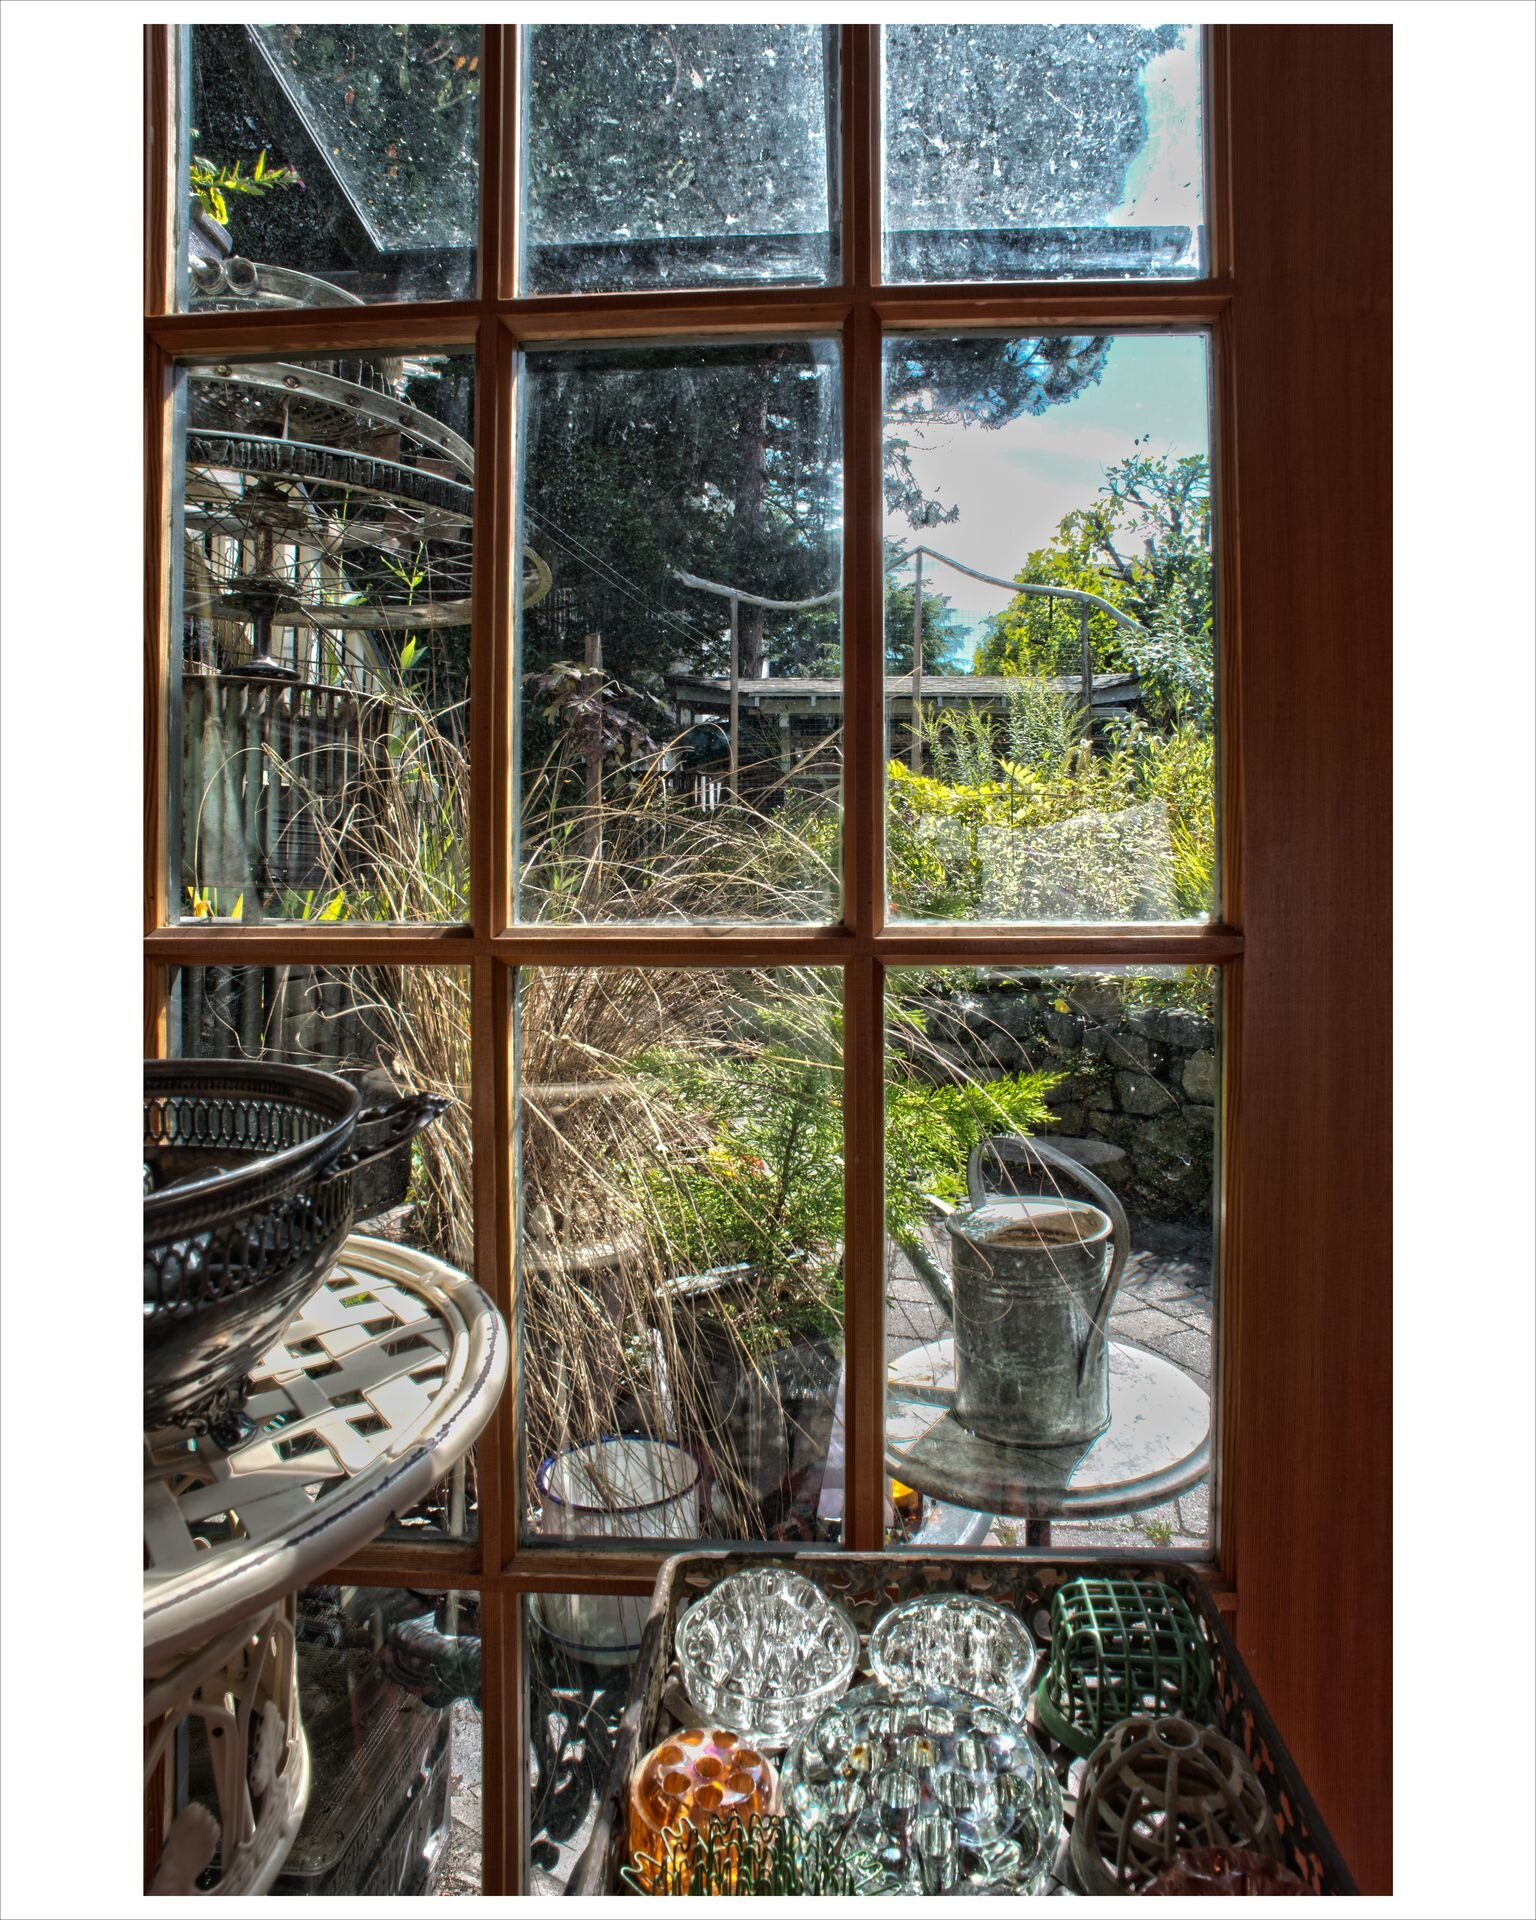 SD Holman's  Window , looking out on Geoff McMurchy's beloved garden near the Drive.